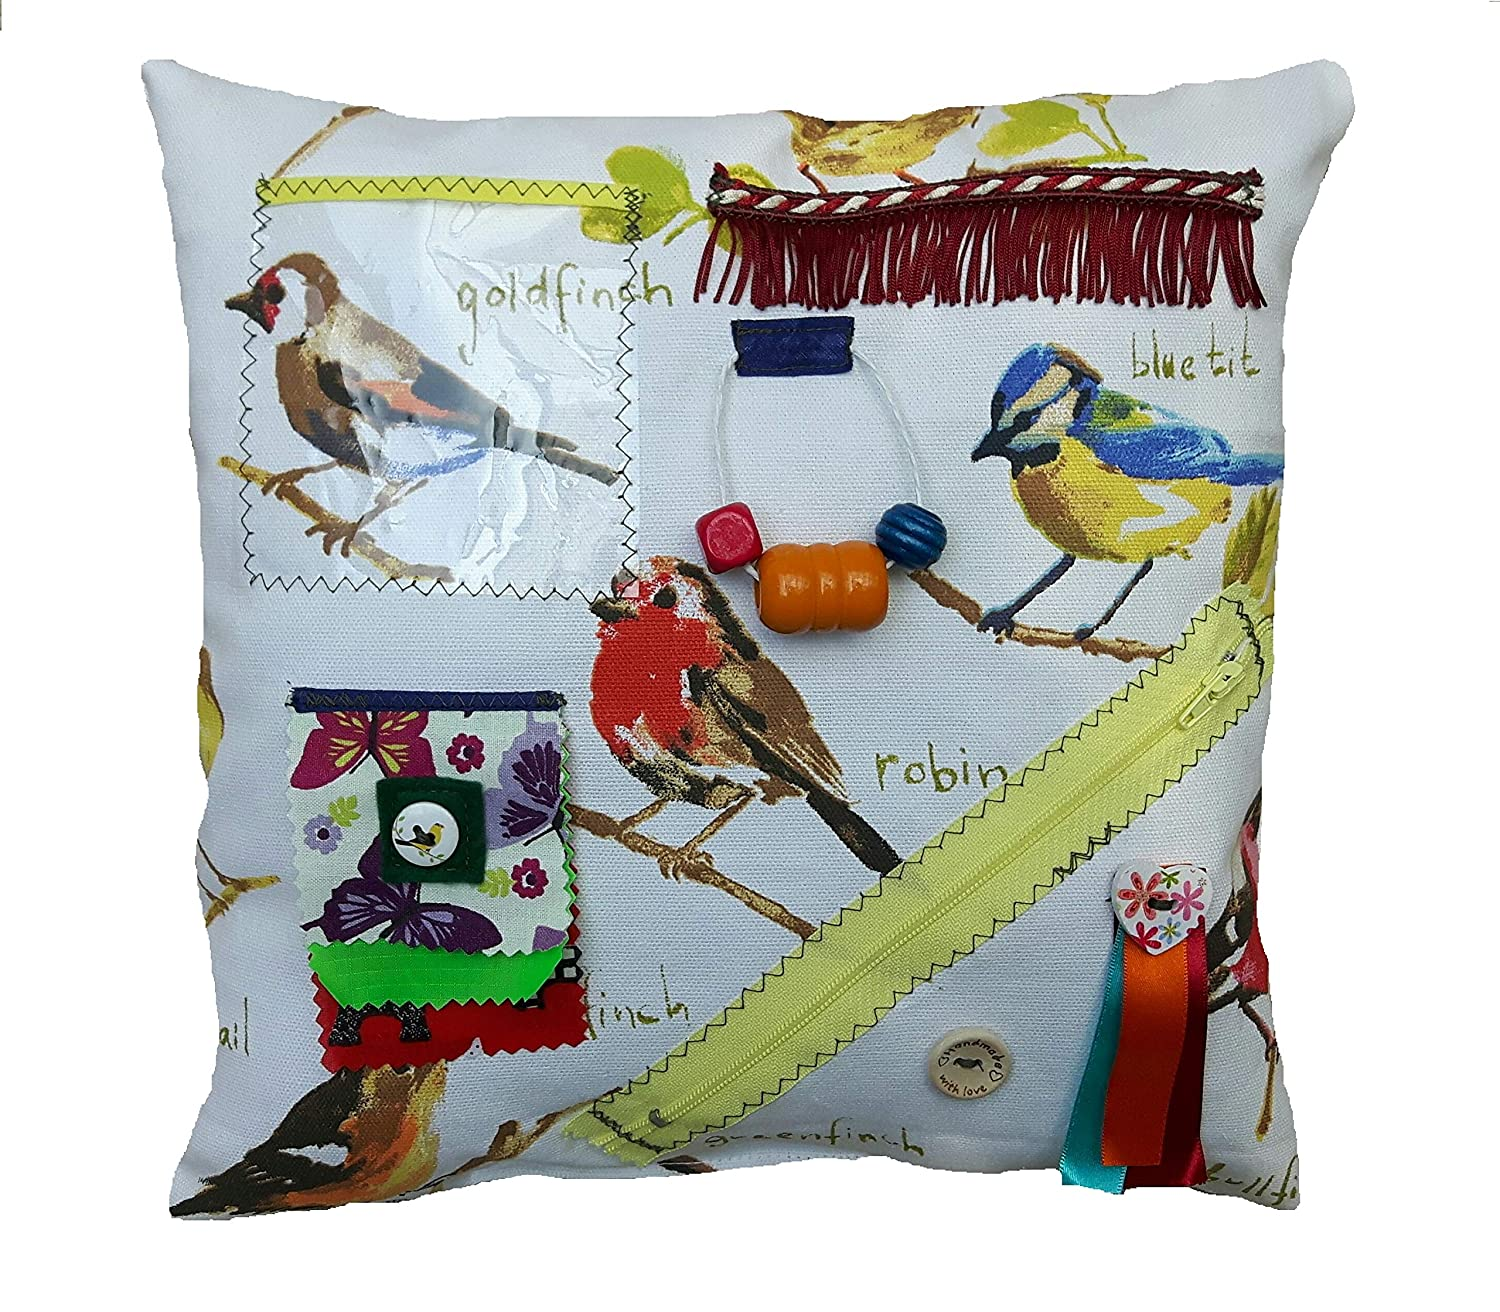 Sensory Fidget Garden Birds Cushion suitable for Dementia - Activities for Seniors